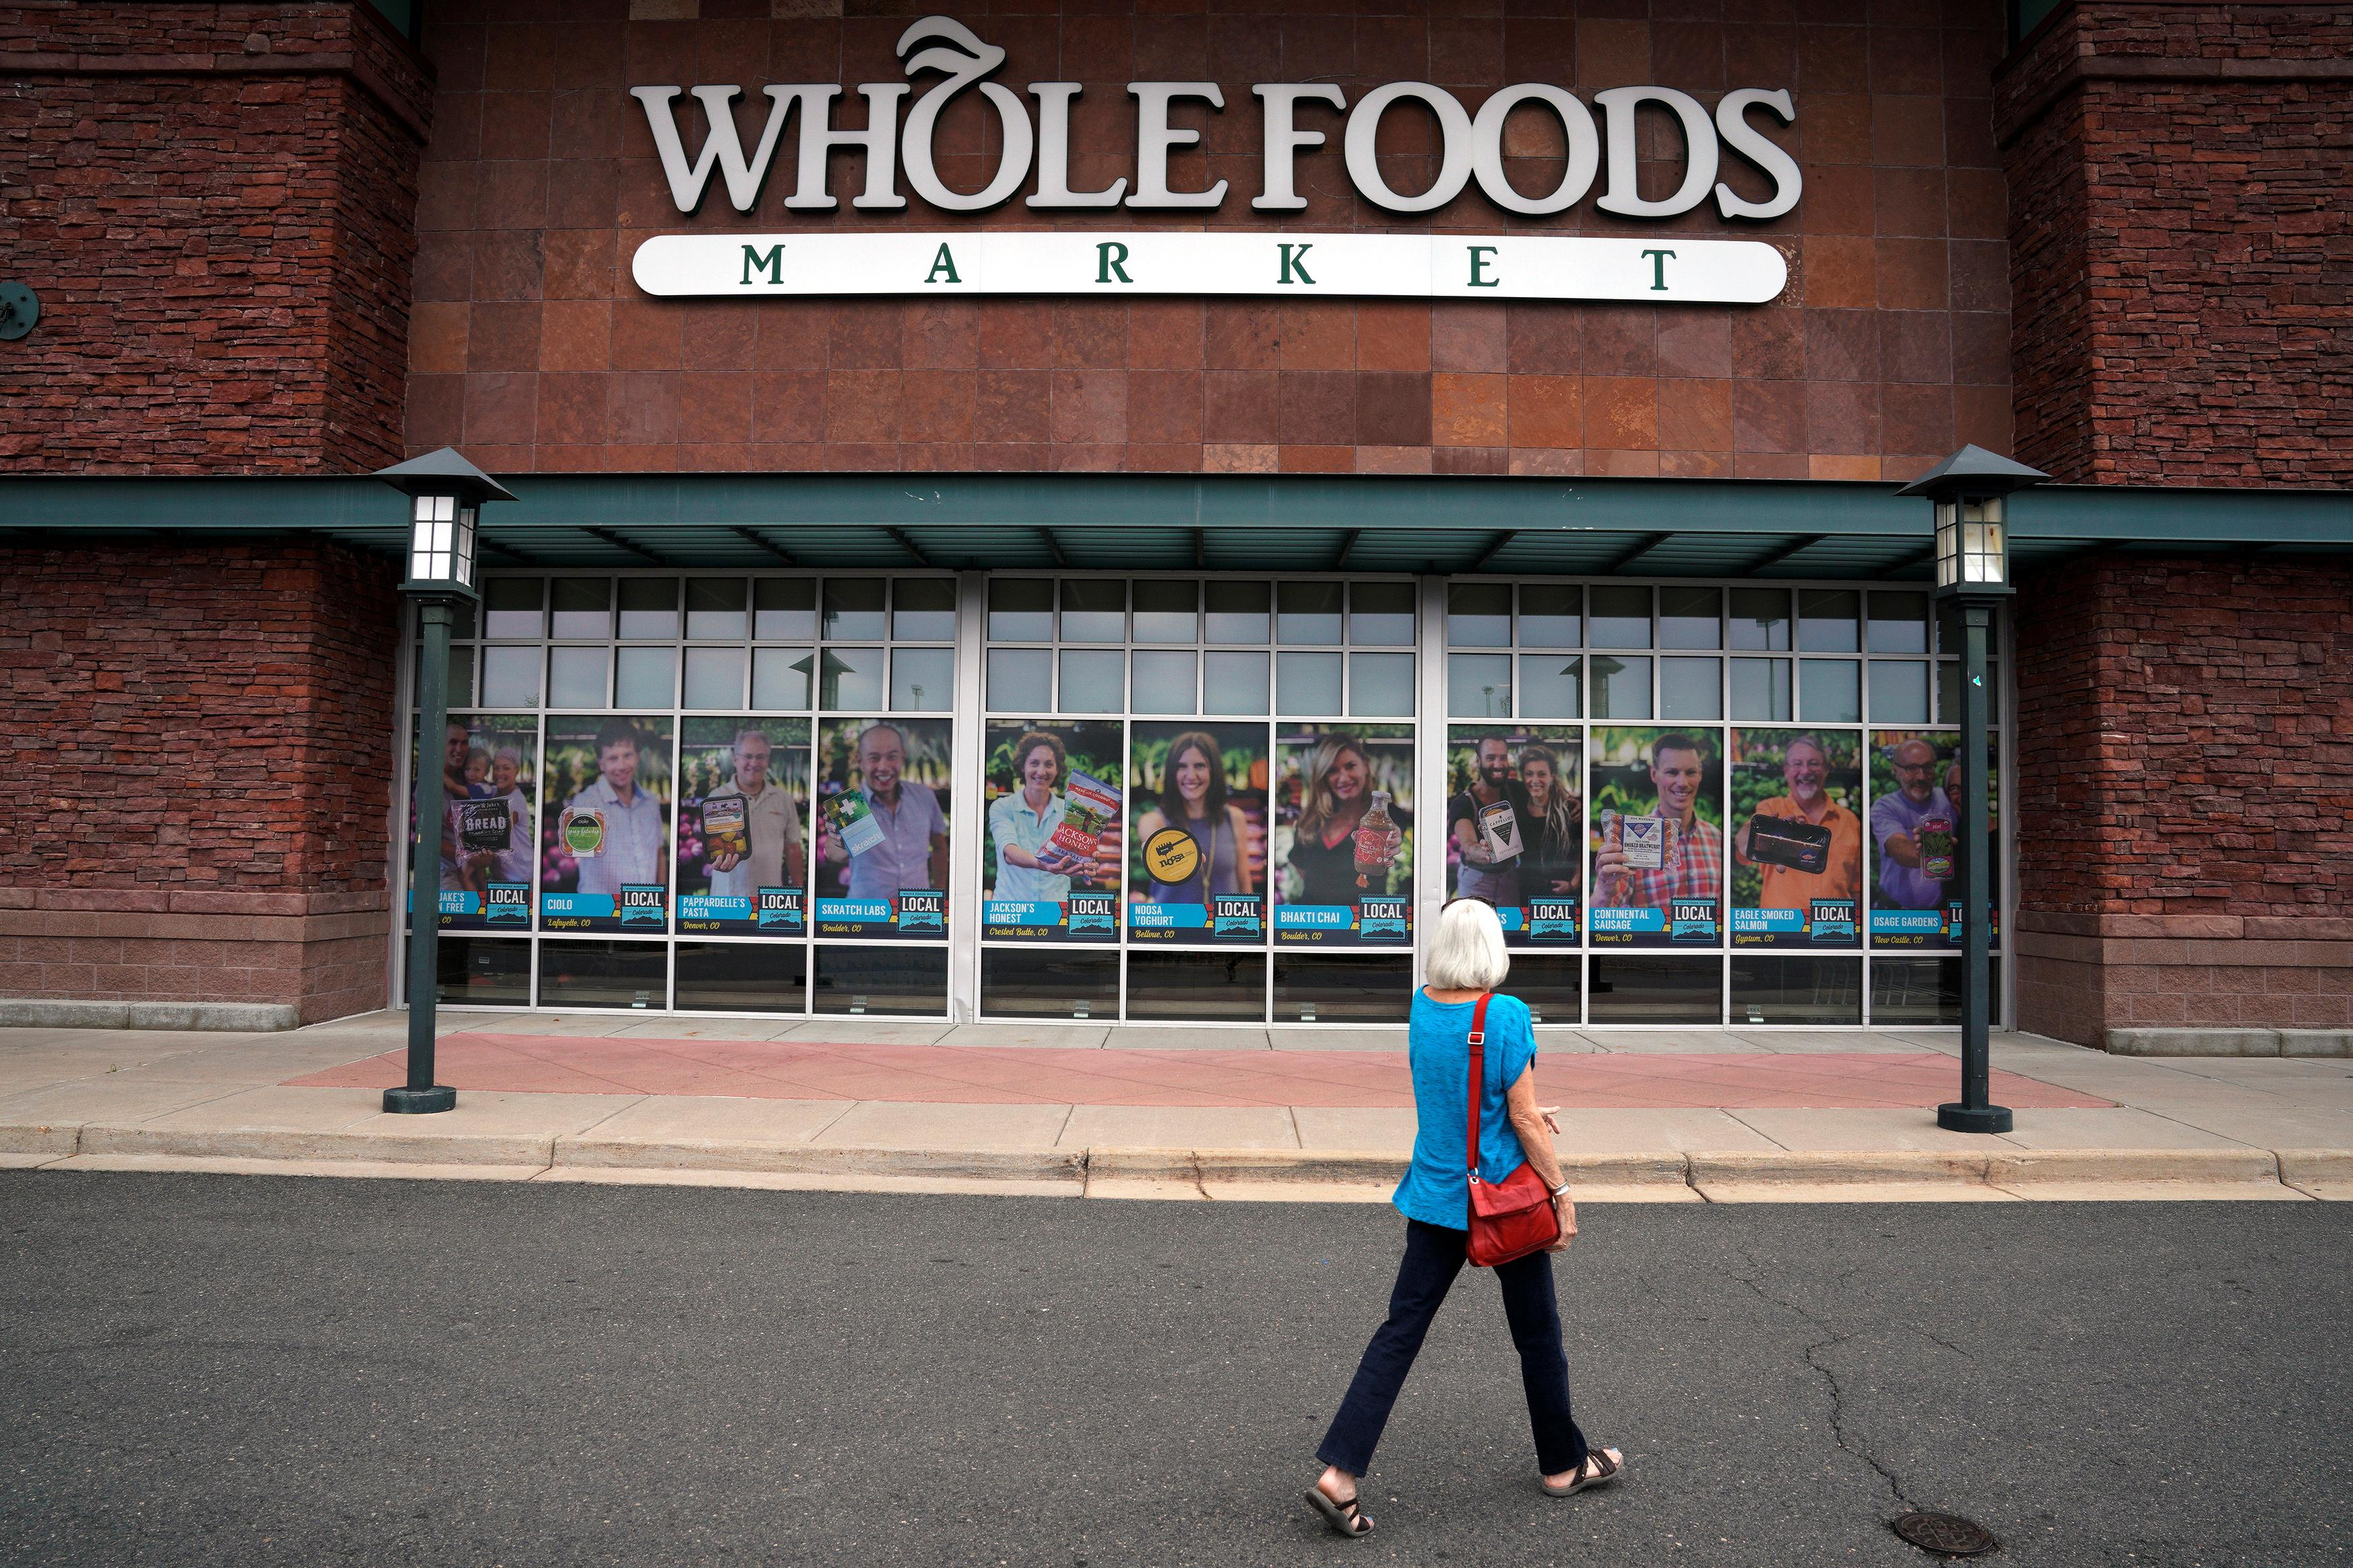 Yellow Fever: Internet rips Whole Foods for naming an outlet